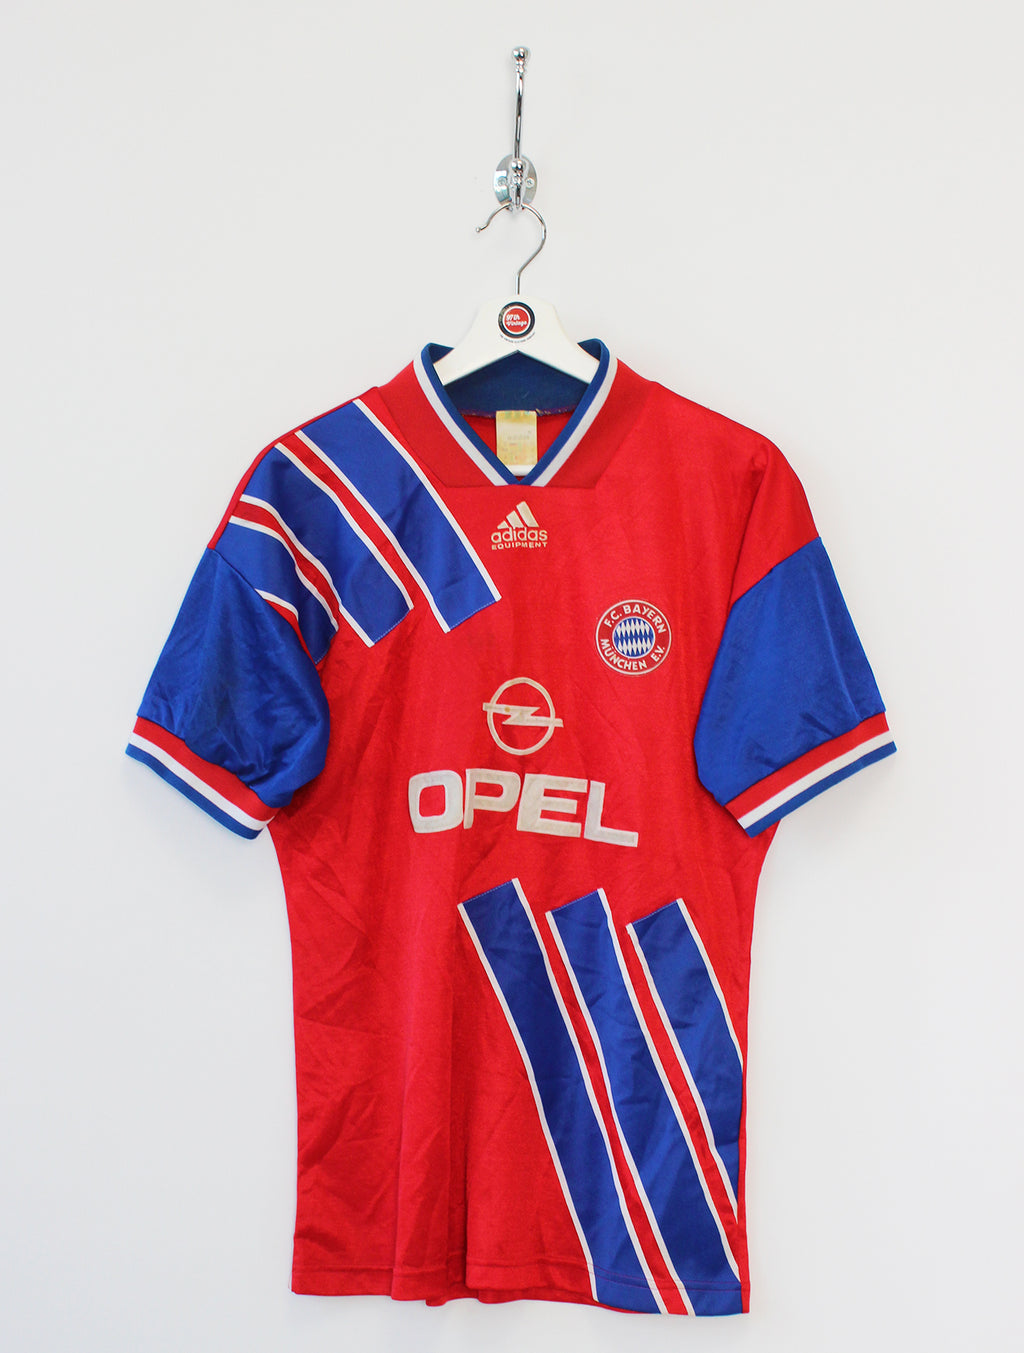 1994/95 Bayern Munich Shirt (S)